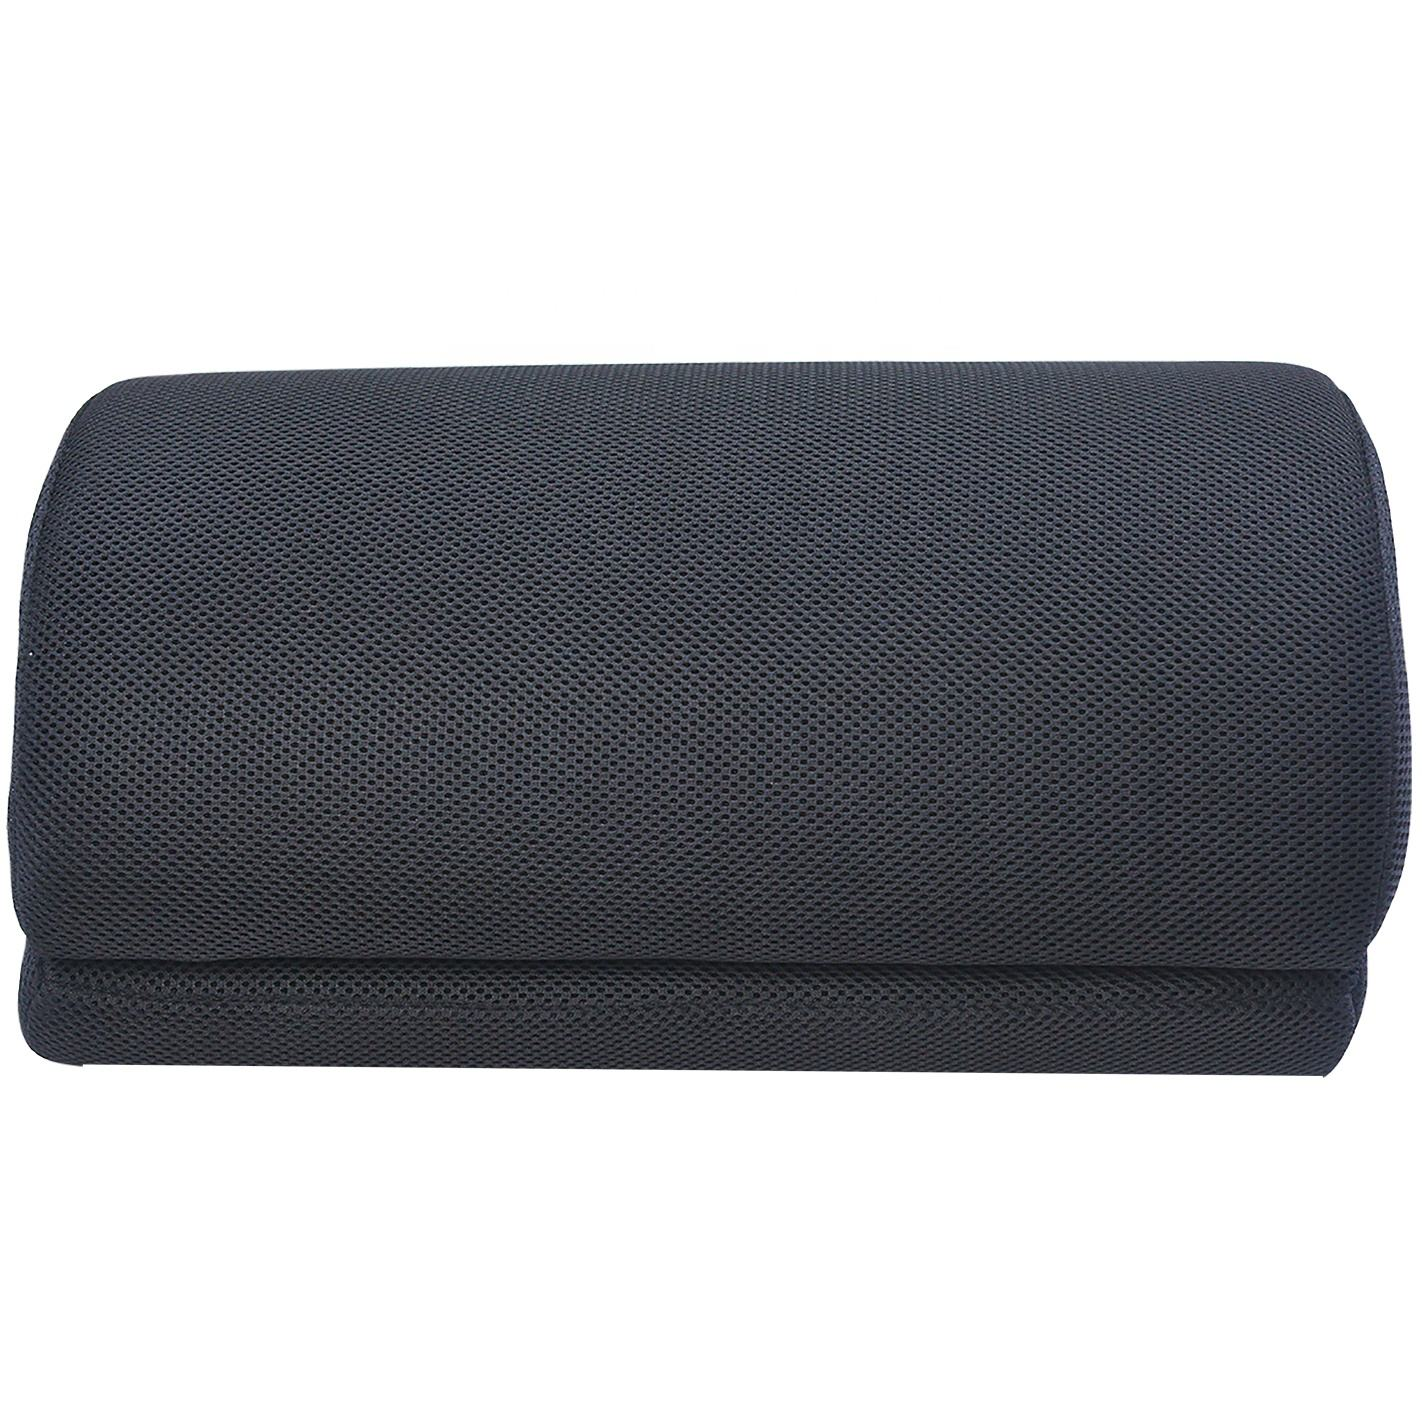 Foot Rest Pillow Cushion Memory Foam Under Office Desk Half Cylinder Home Foot Relax Pain Relief Relaxing Cushion Pad